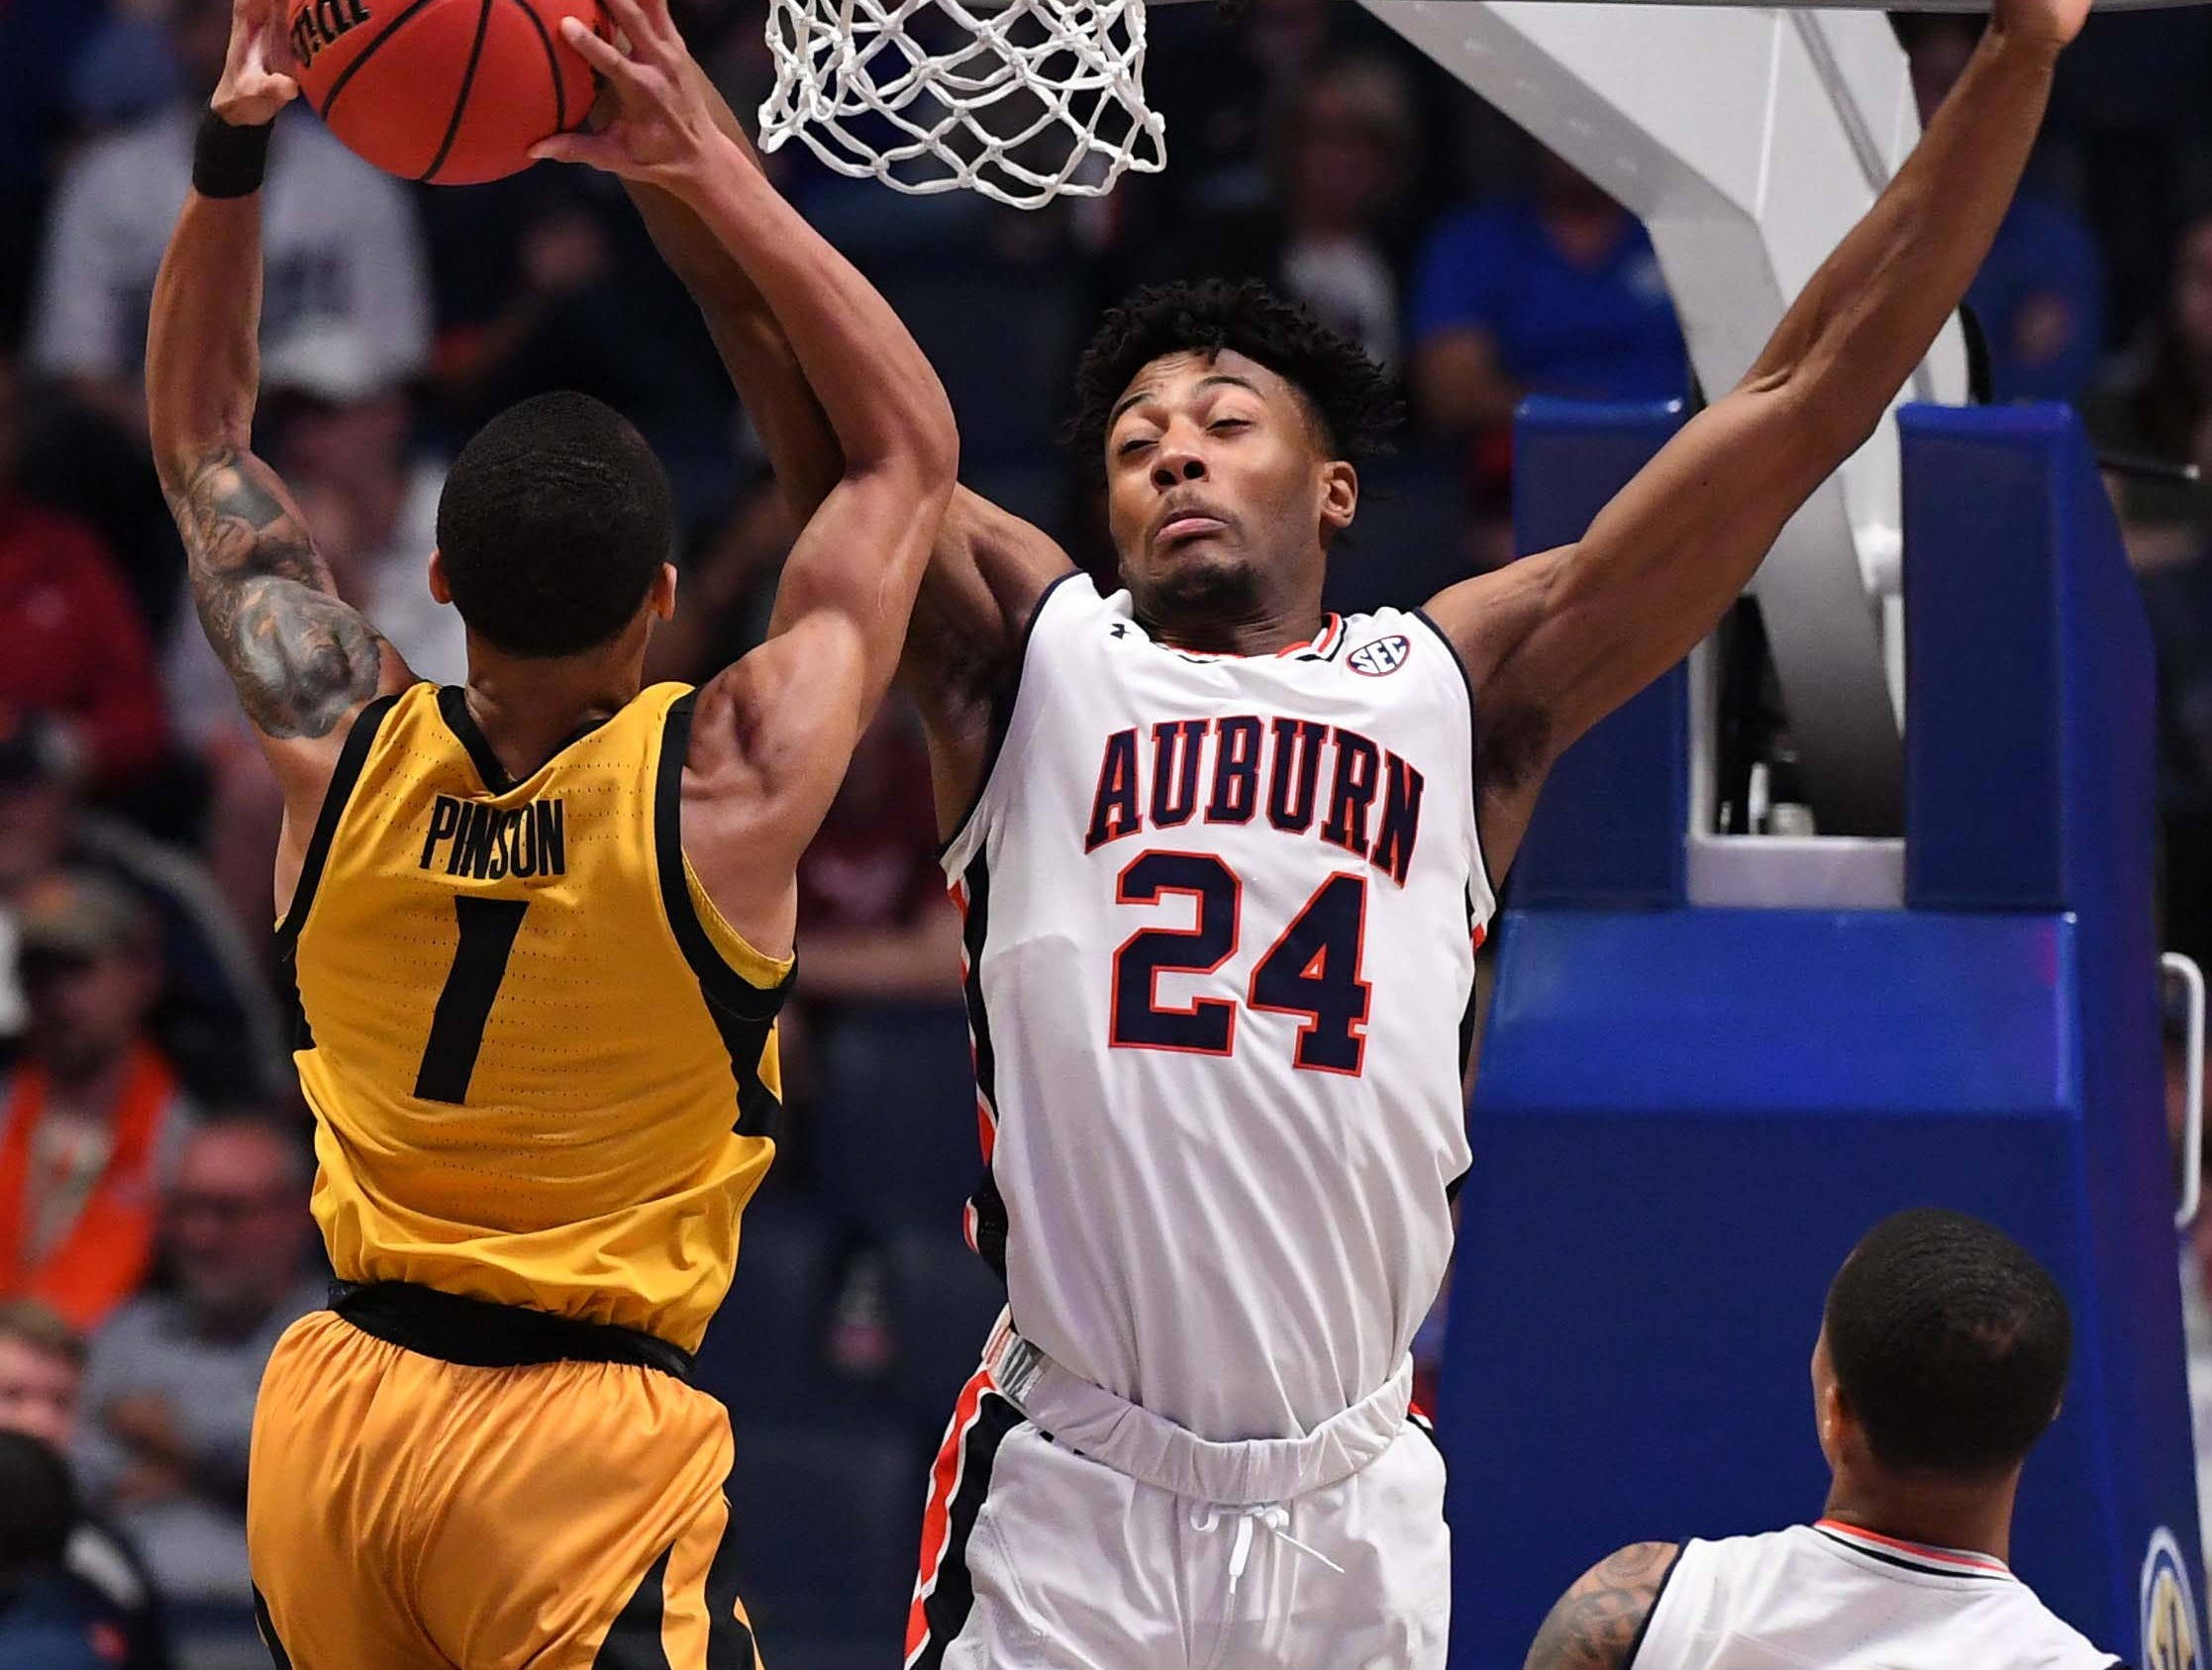 Mar 14, 2019; Nashville, TN, USA; Missouri Tigers guard Xavier Pinson (1) is fouled by Auburn Tigers forward Anfernee McLemore (24) as he attempts a shot during the first half of the SEC conference tournament at Bridgestone Arena. Mandatory Credit: Christopher Hanewinckel-USA TODAY Sports